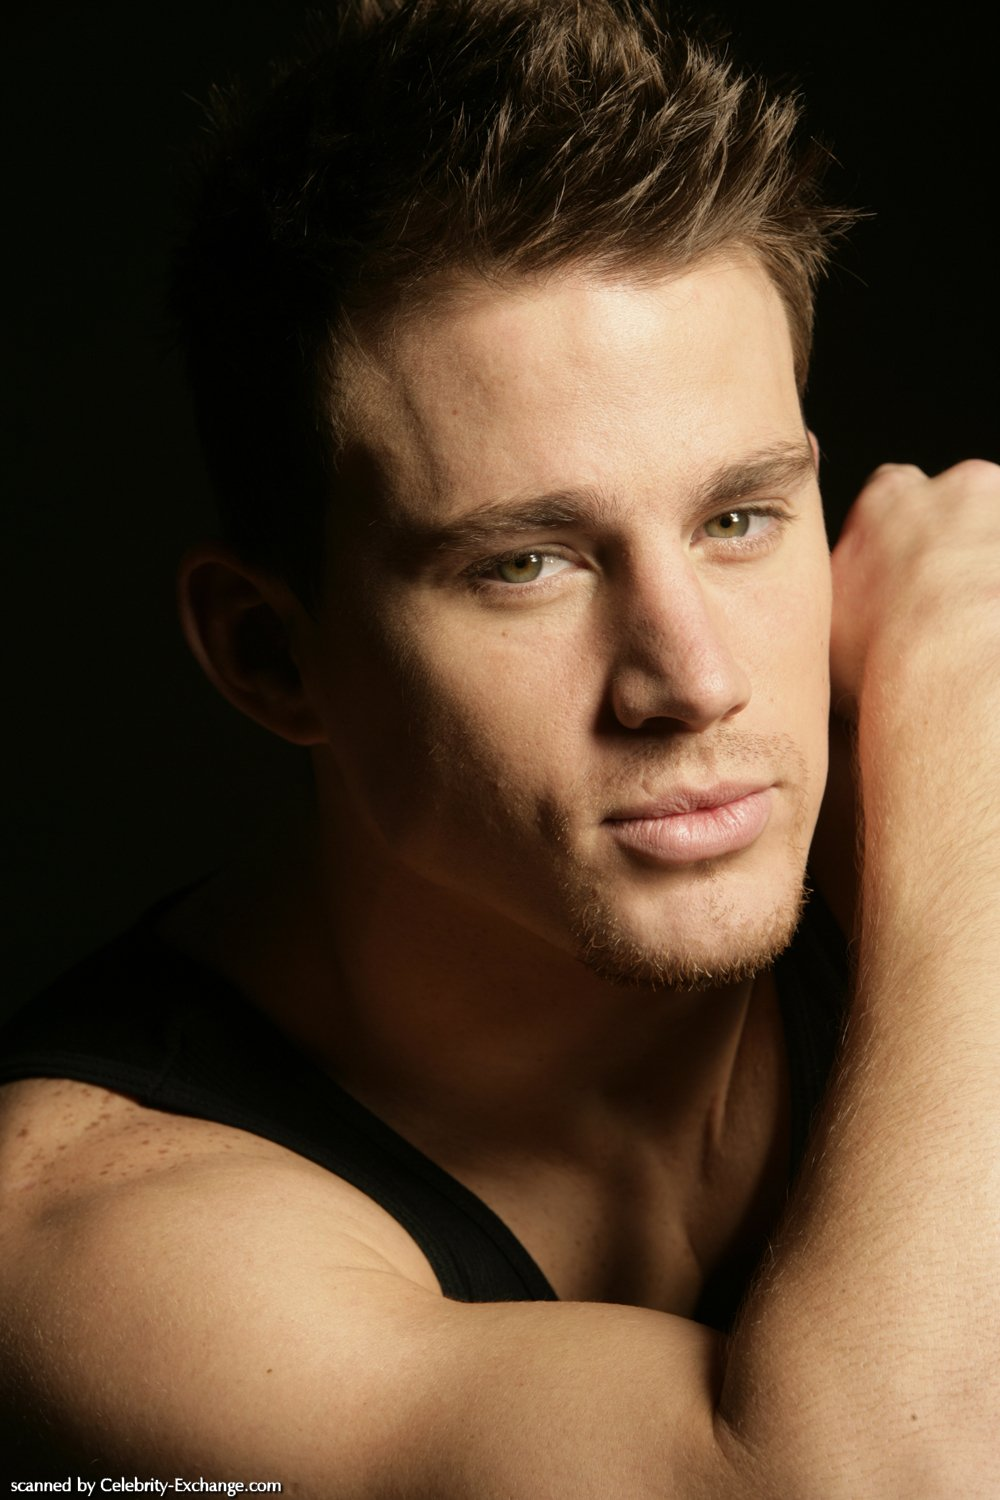 http://cms7.blogia.com/blogs/g/gi/gin/gingelita/upload/20091018125223-channing-tatum03.jpg